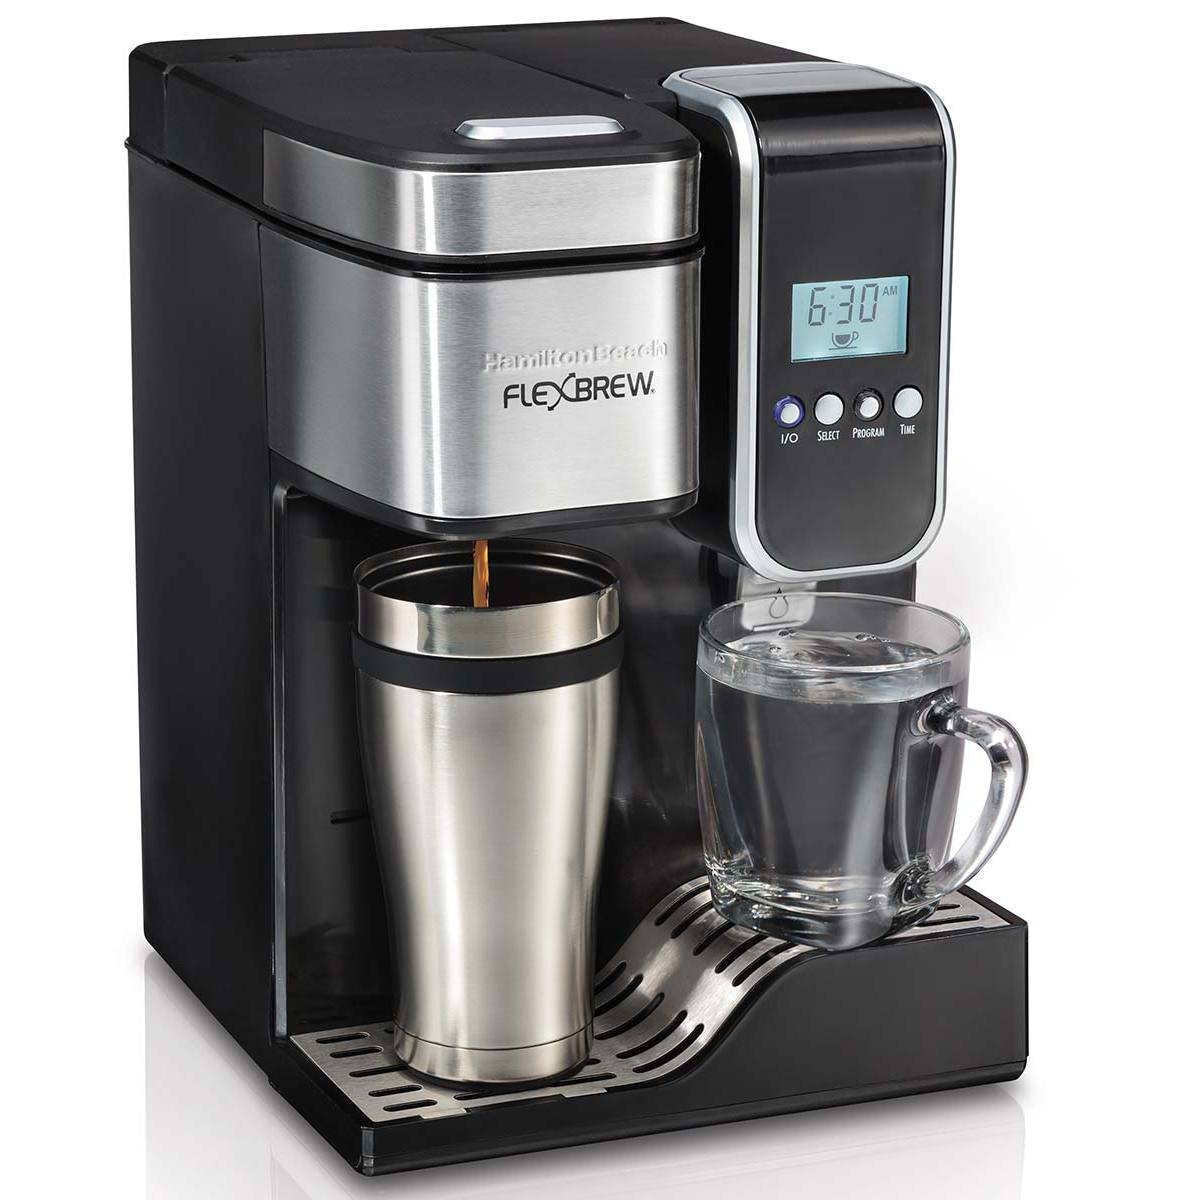 Hamilton Beach Flexbrew Programmable Single Serve Coffee Maker 49988